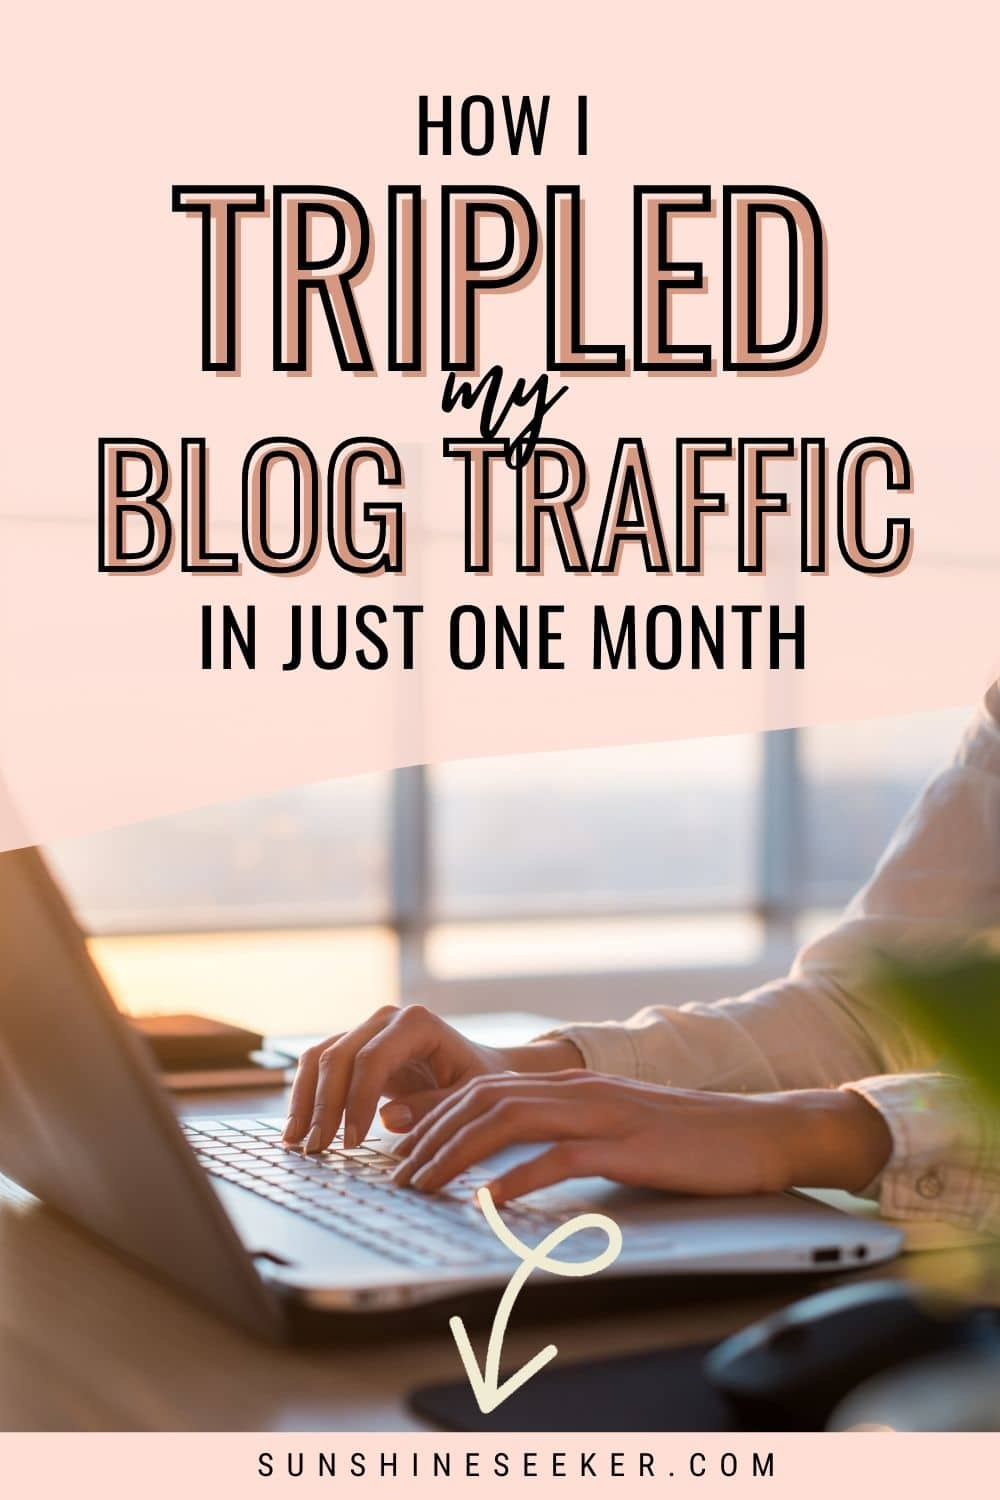 Are you wondering how to grow your blog traffic in 2020? Click through to see how I tripled my blog traffic in just one month. It feels so good to finally see results after one year of stagnant traffic. Finally, a Pinterest strategy that actually works for travel blogs! This strategy is updated after the most recent Pinterest algorithm change in 2020. Increase traffic to your blog today! #pinterest #pinterestcourse #trafficgrowth #blogtraffic #bloggingtips